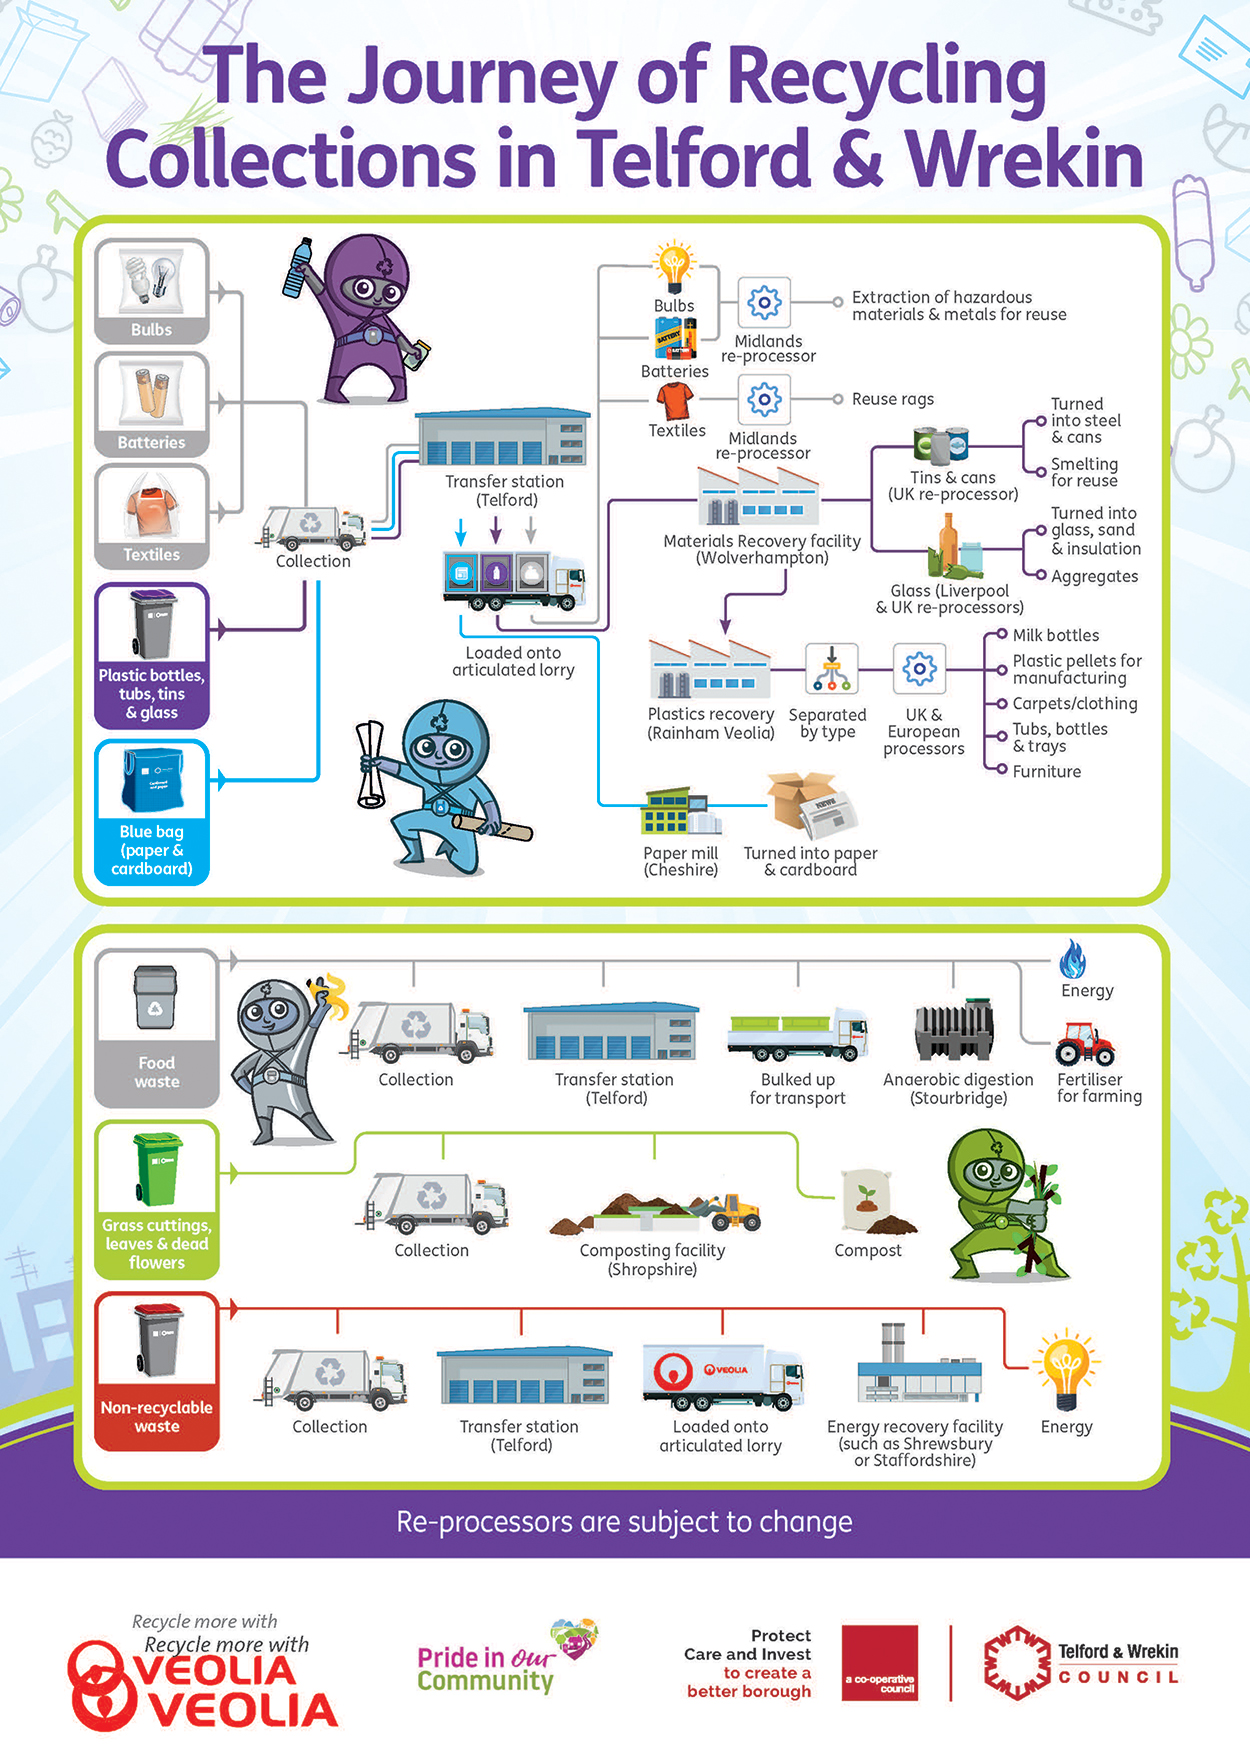 An illustration of the journey of recycling collections in Telford and Wrekin.